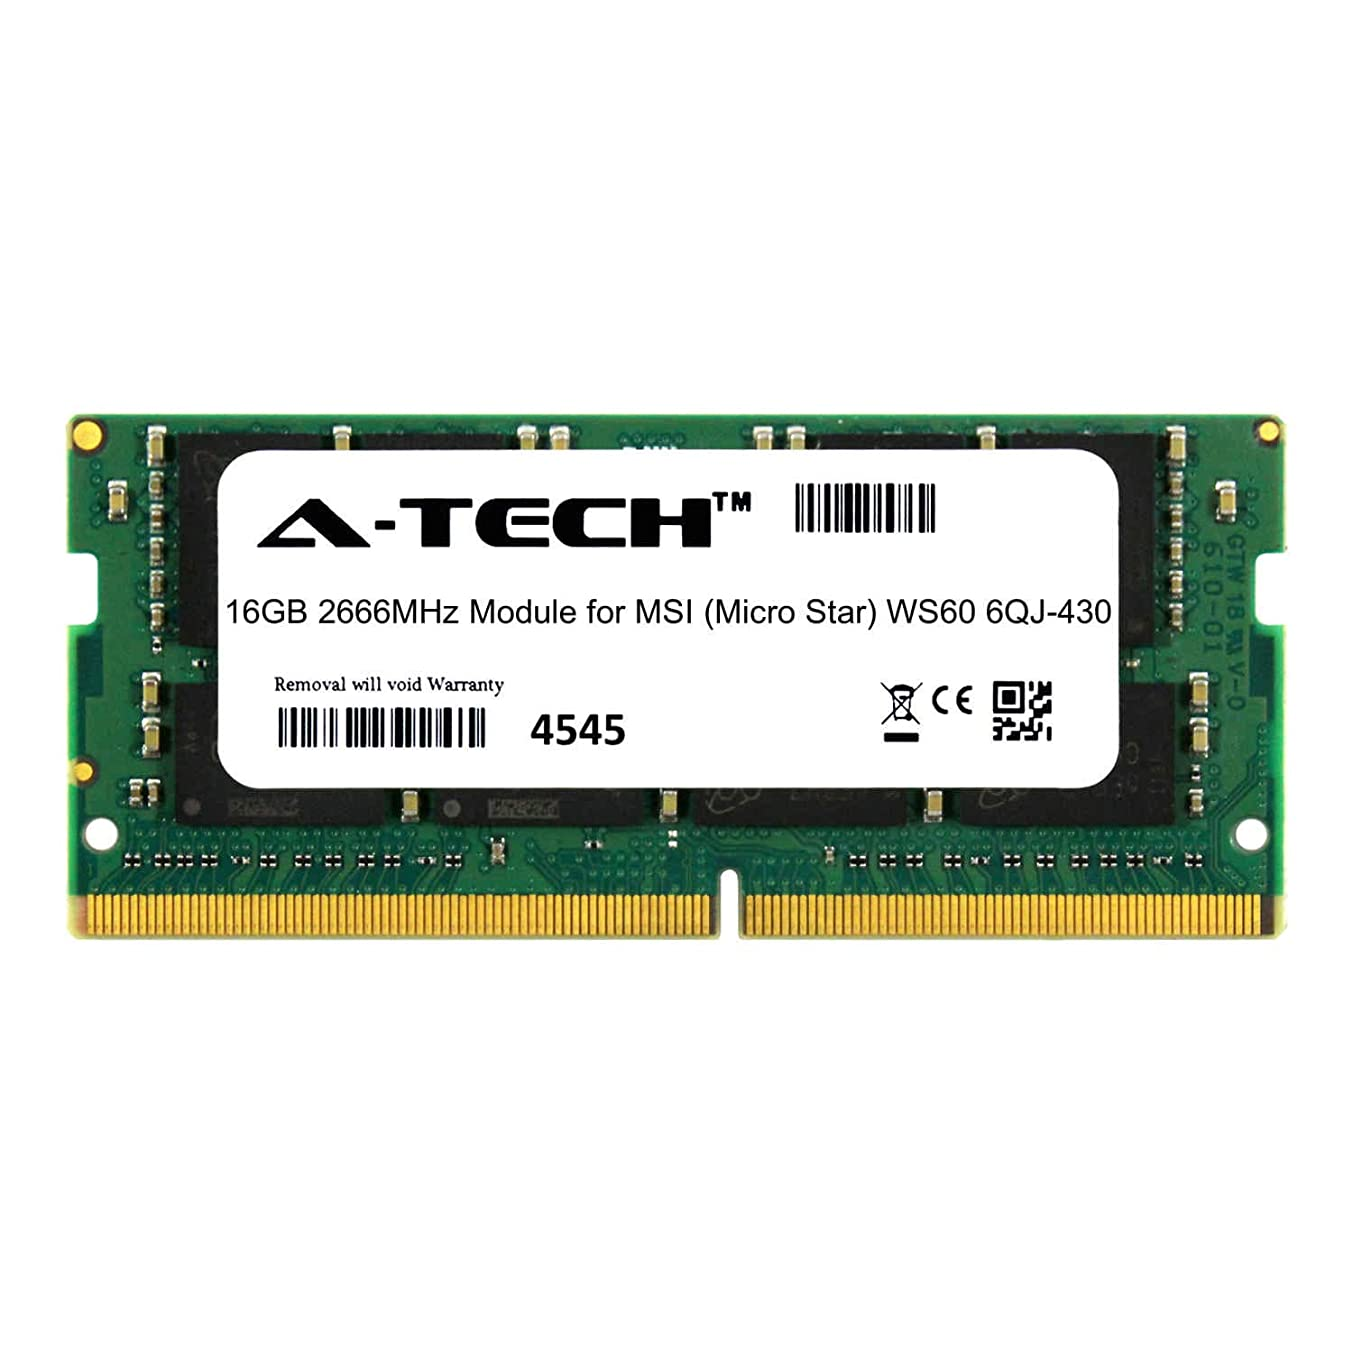 A-Tech 16GB Module for MSI (Micro Star) WS60 6QJ-430 Laptop & Notebook Compatible DDR4 2666Mhz Memory Ram (ATMS367804A25832X1)